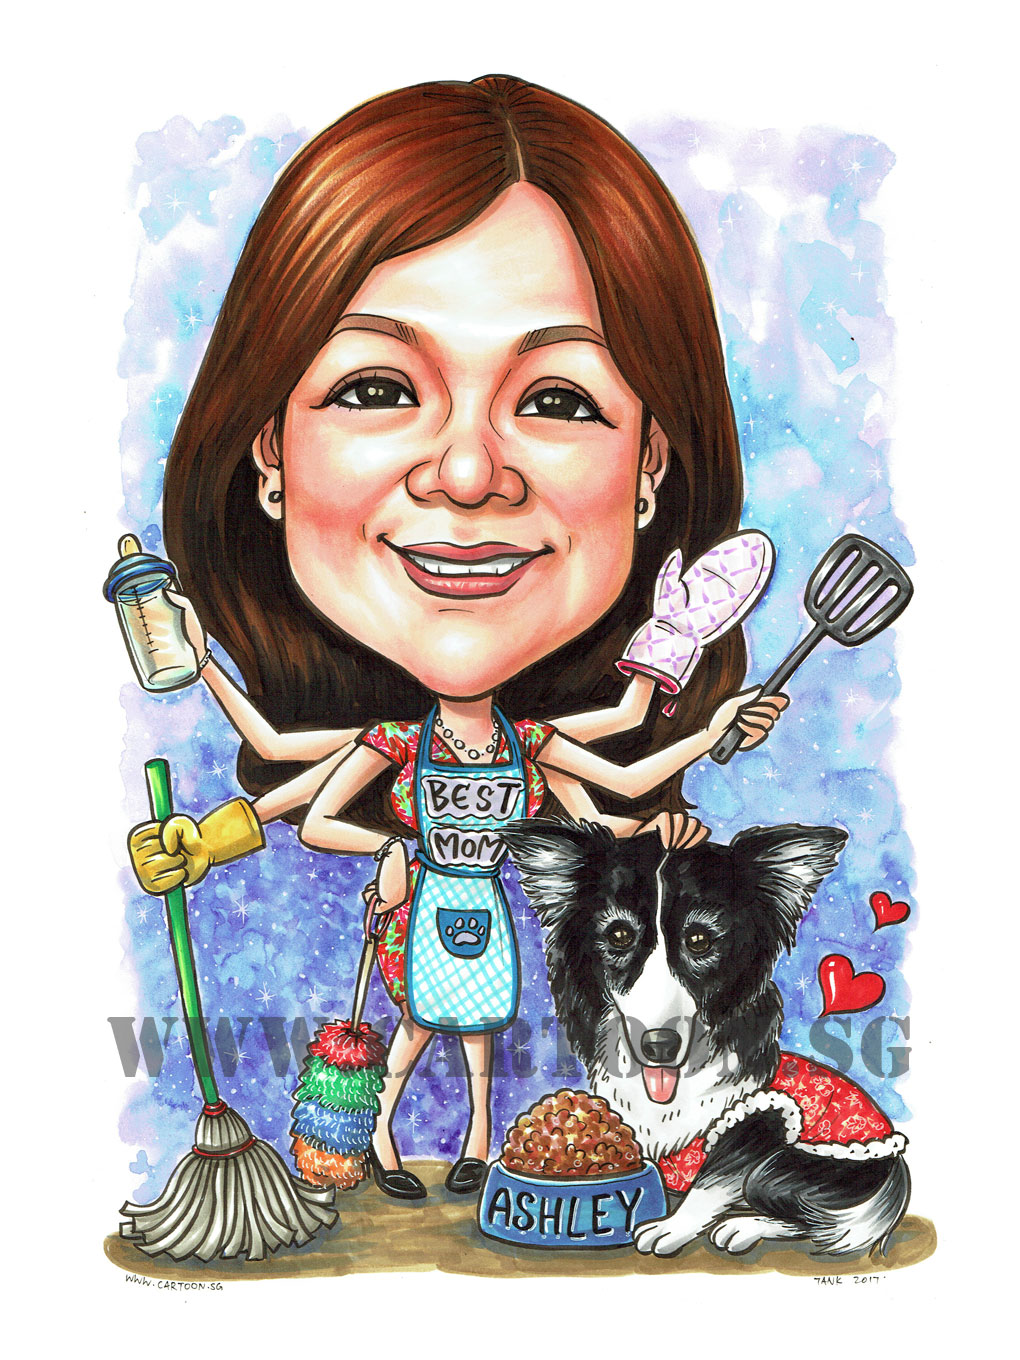 2017-07-13-Caricature-Singapore-best-mom-mother-dog-pet.jpg